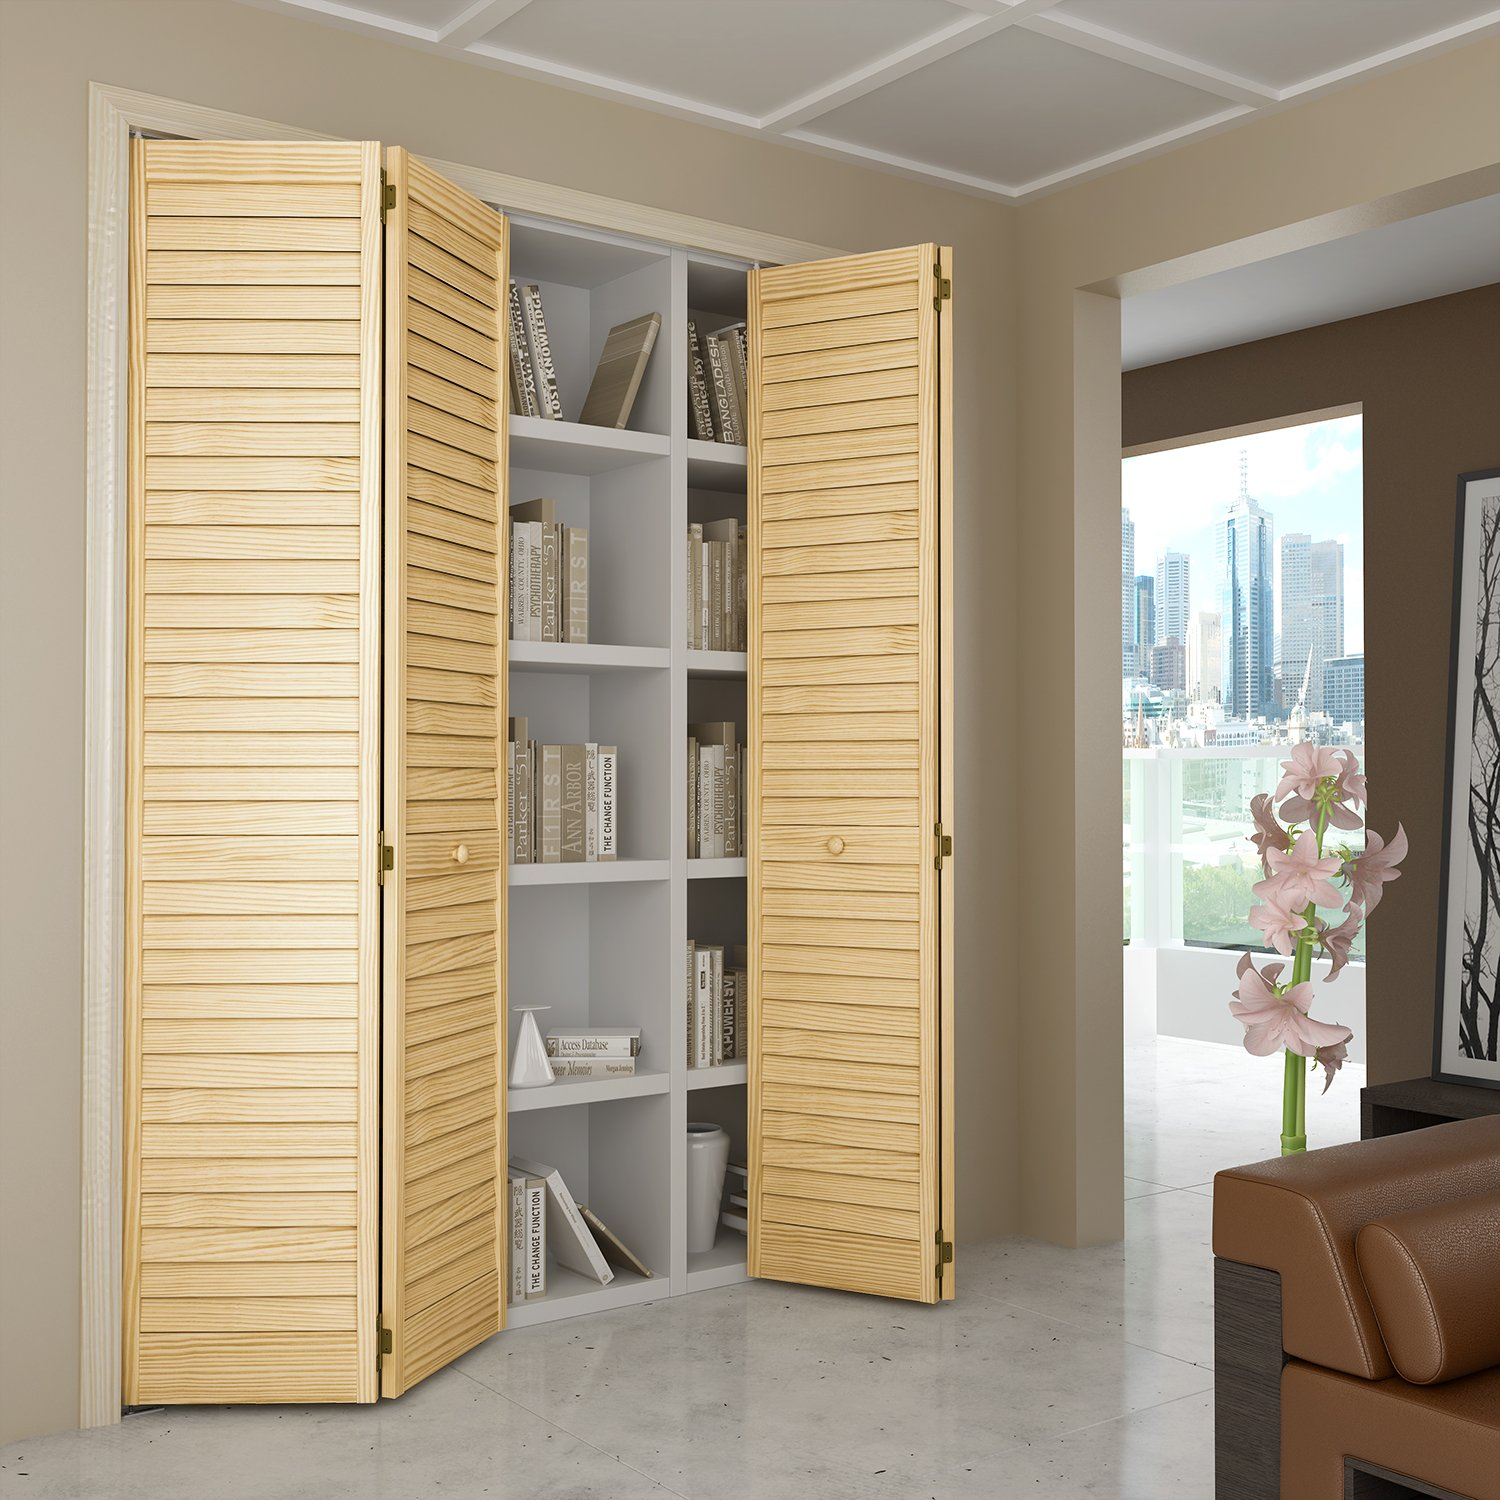 Closet Door Bi-fold Louver Louver Plantation (32x80) - Closet Storage And Organization Systems - Amazon.com & Closet Door Bi-fold Louver Louver Plantation (32x80) - Closet ...